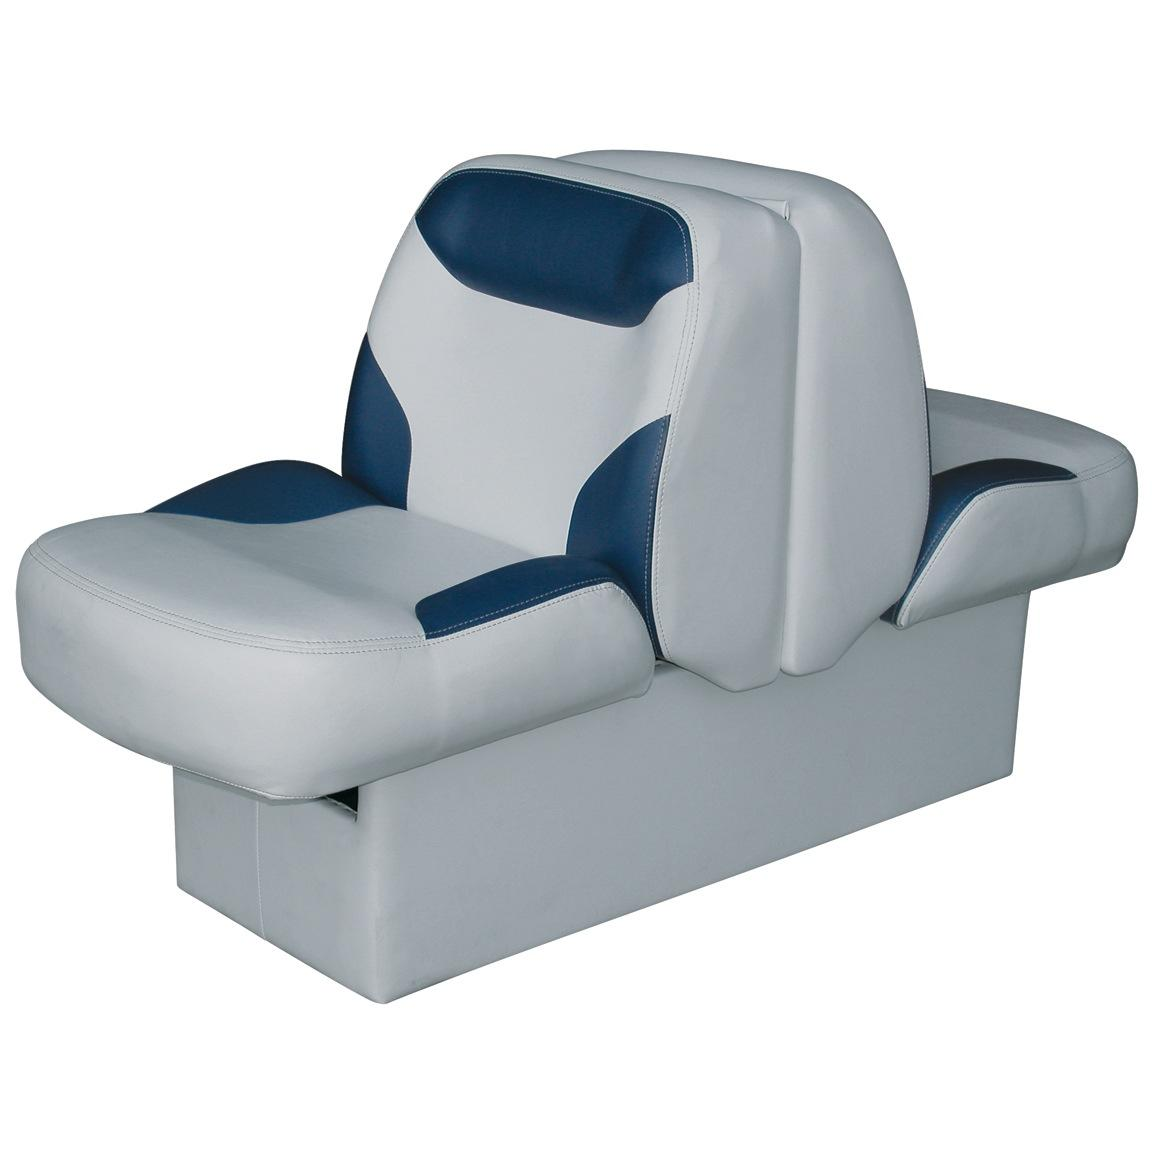 Wise® Bayliner Replacement Lounge Seat, With Base, Grey / Navy